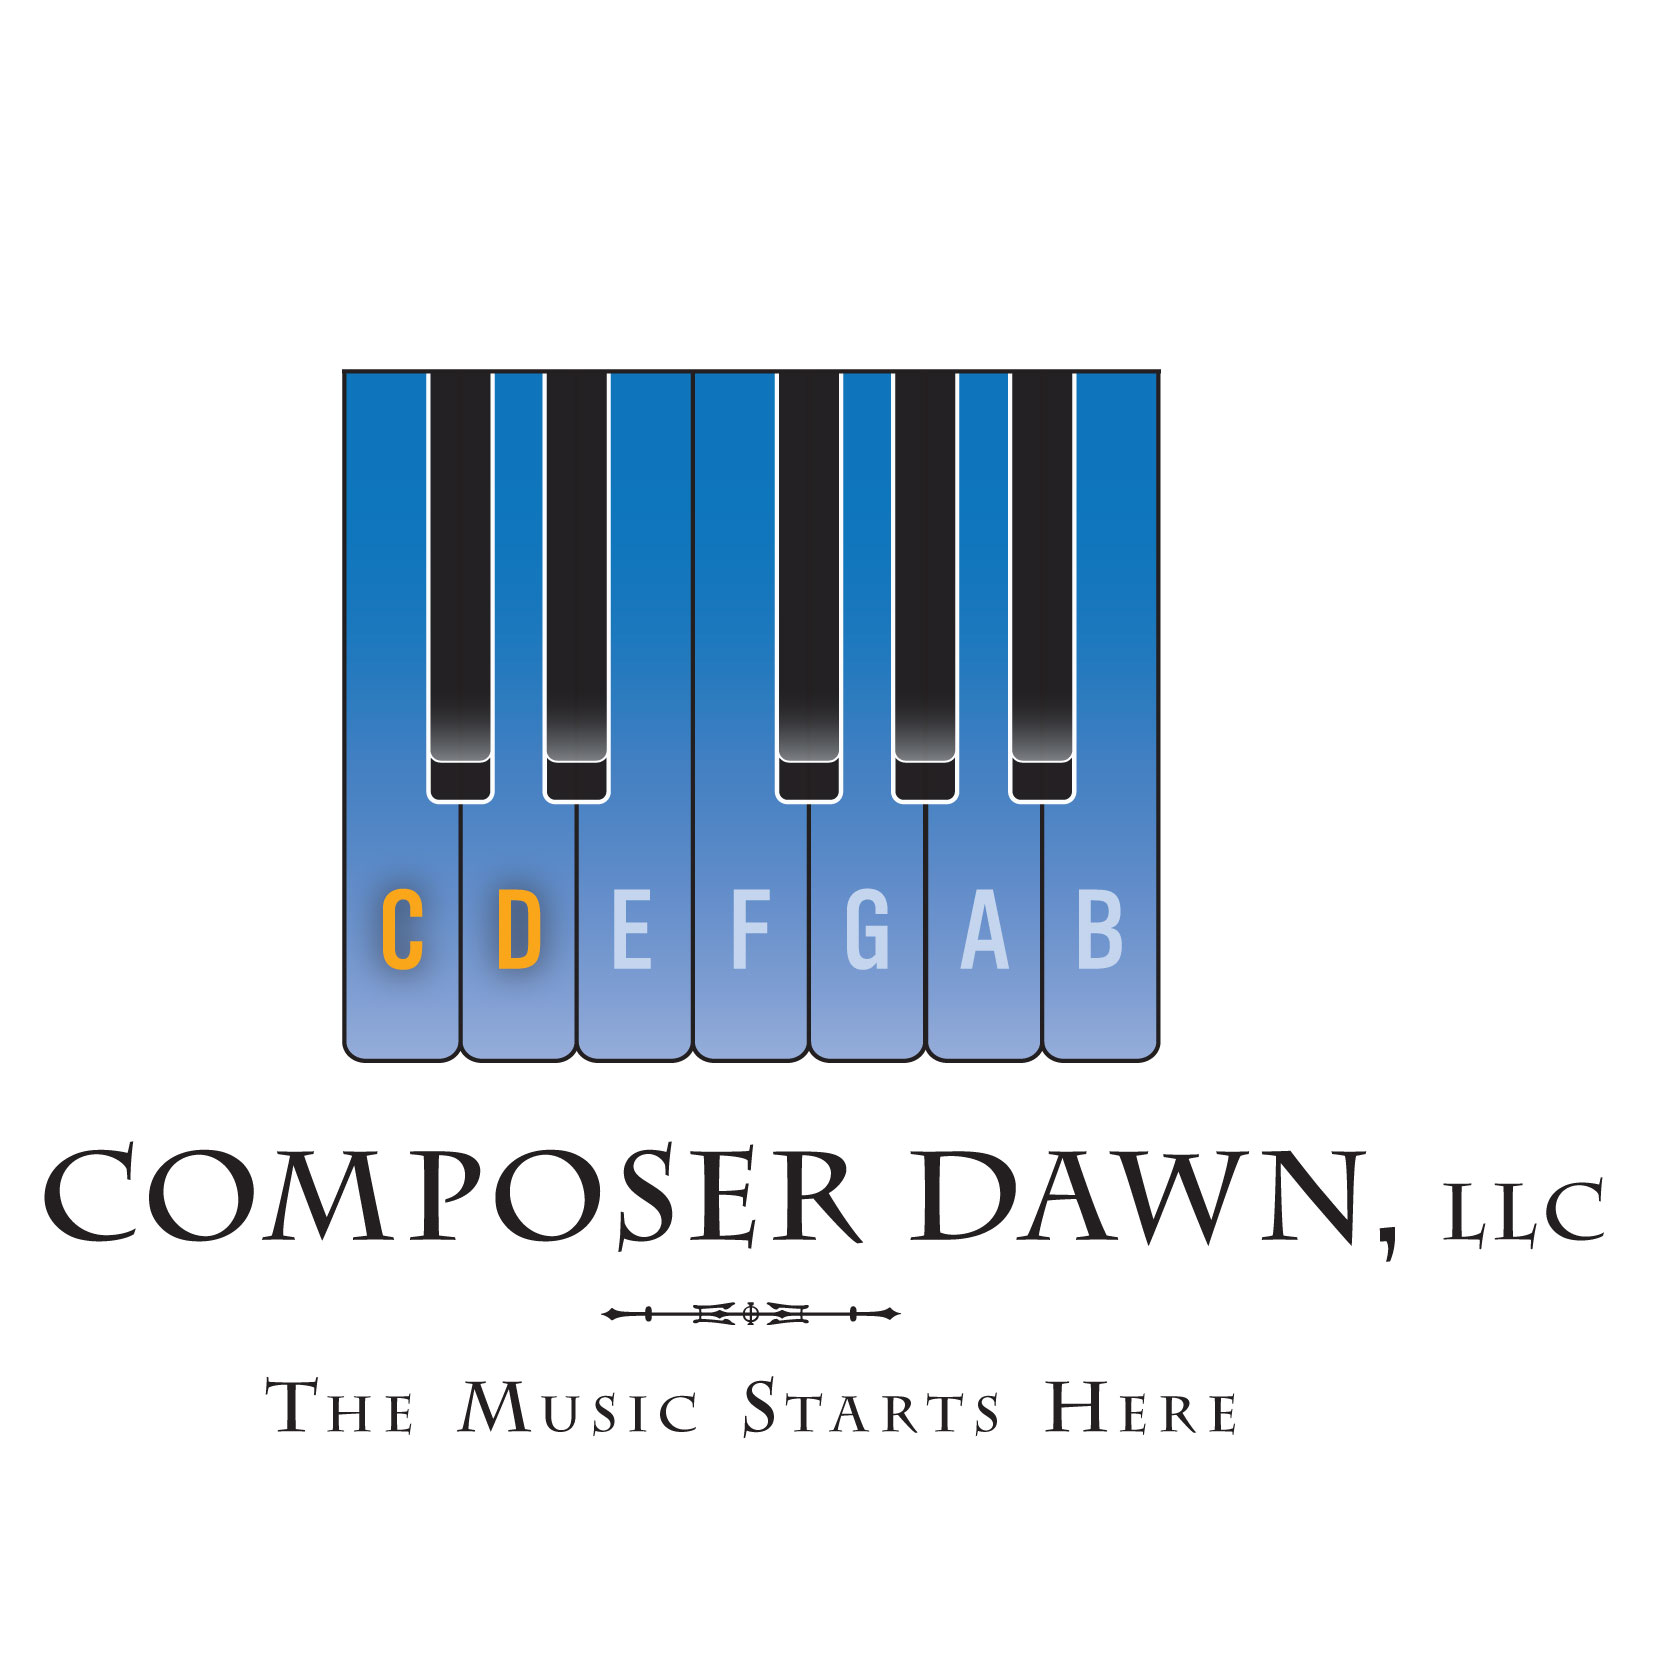 ComposerDawn, LLC